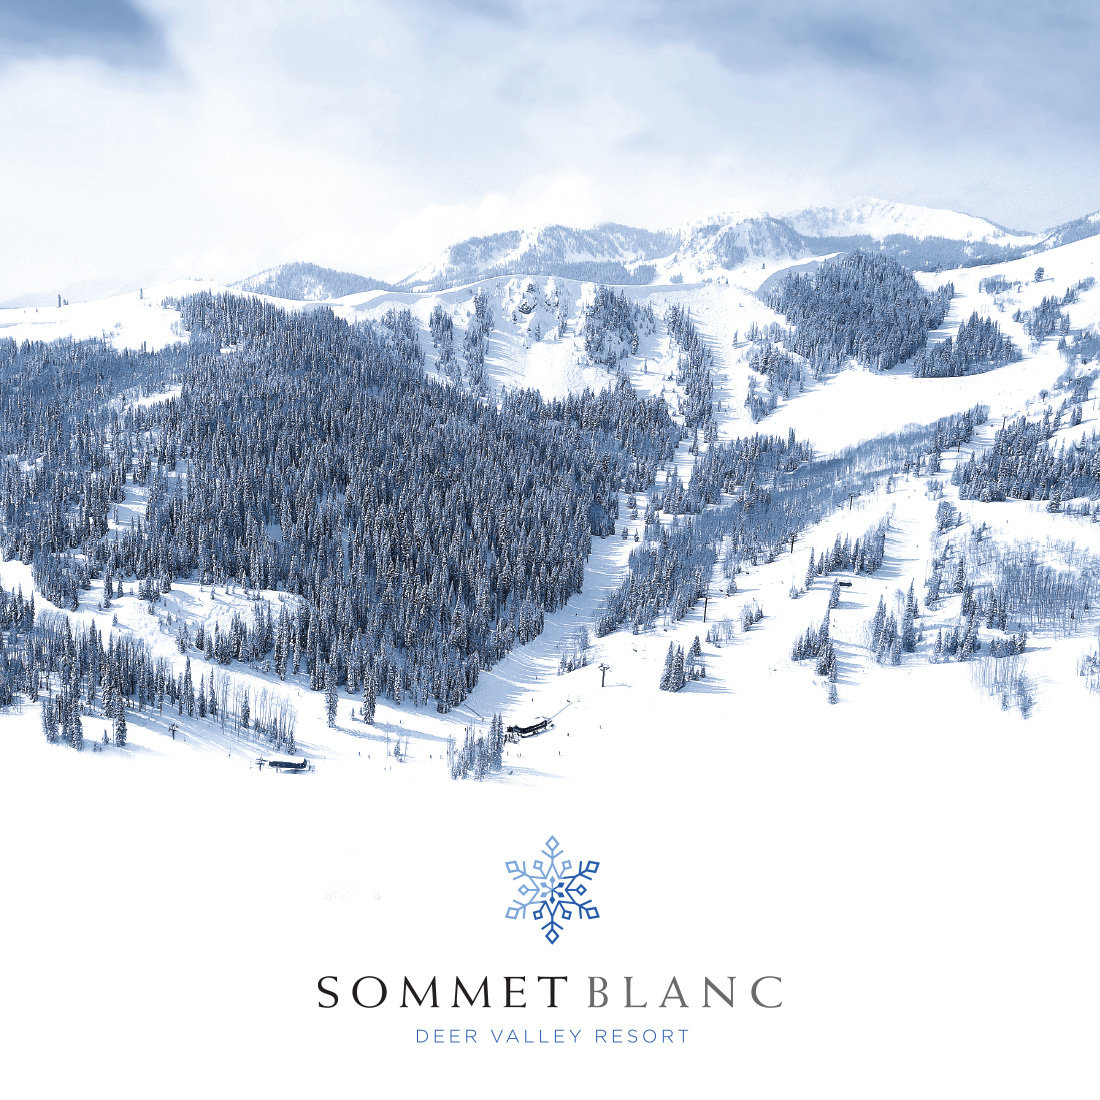 sommet blanc at empire pass deer valley